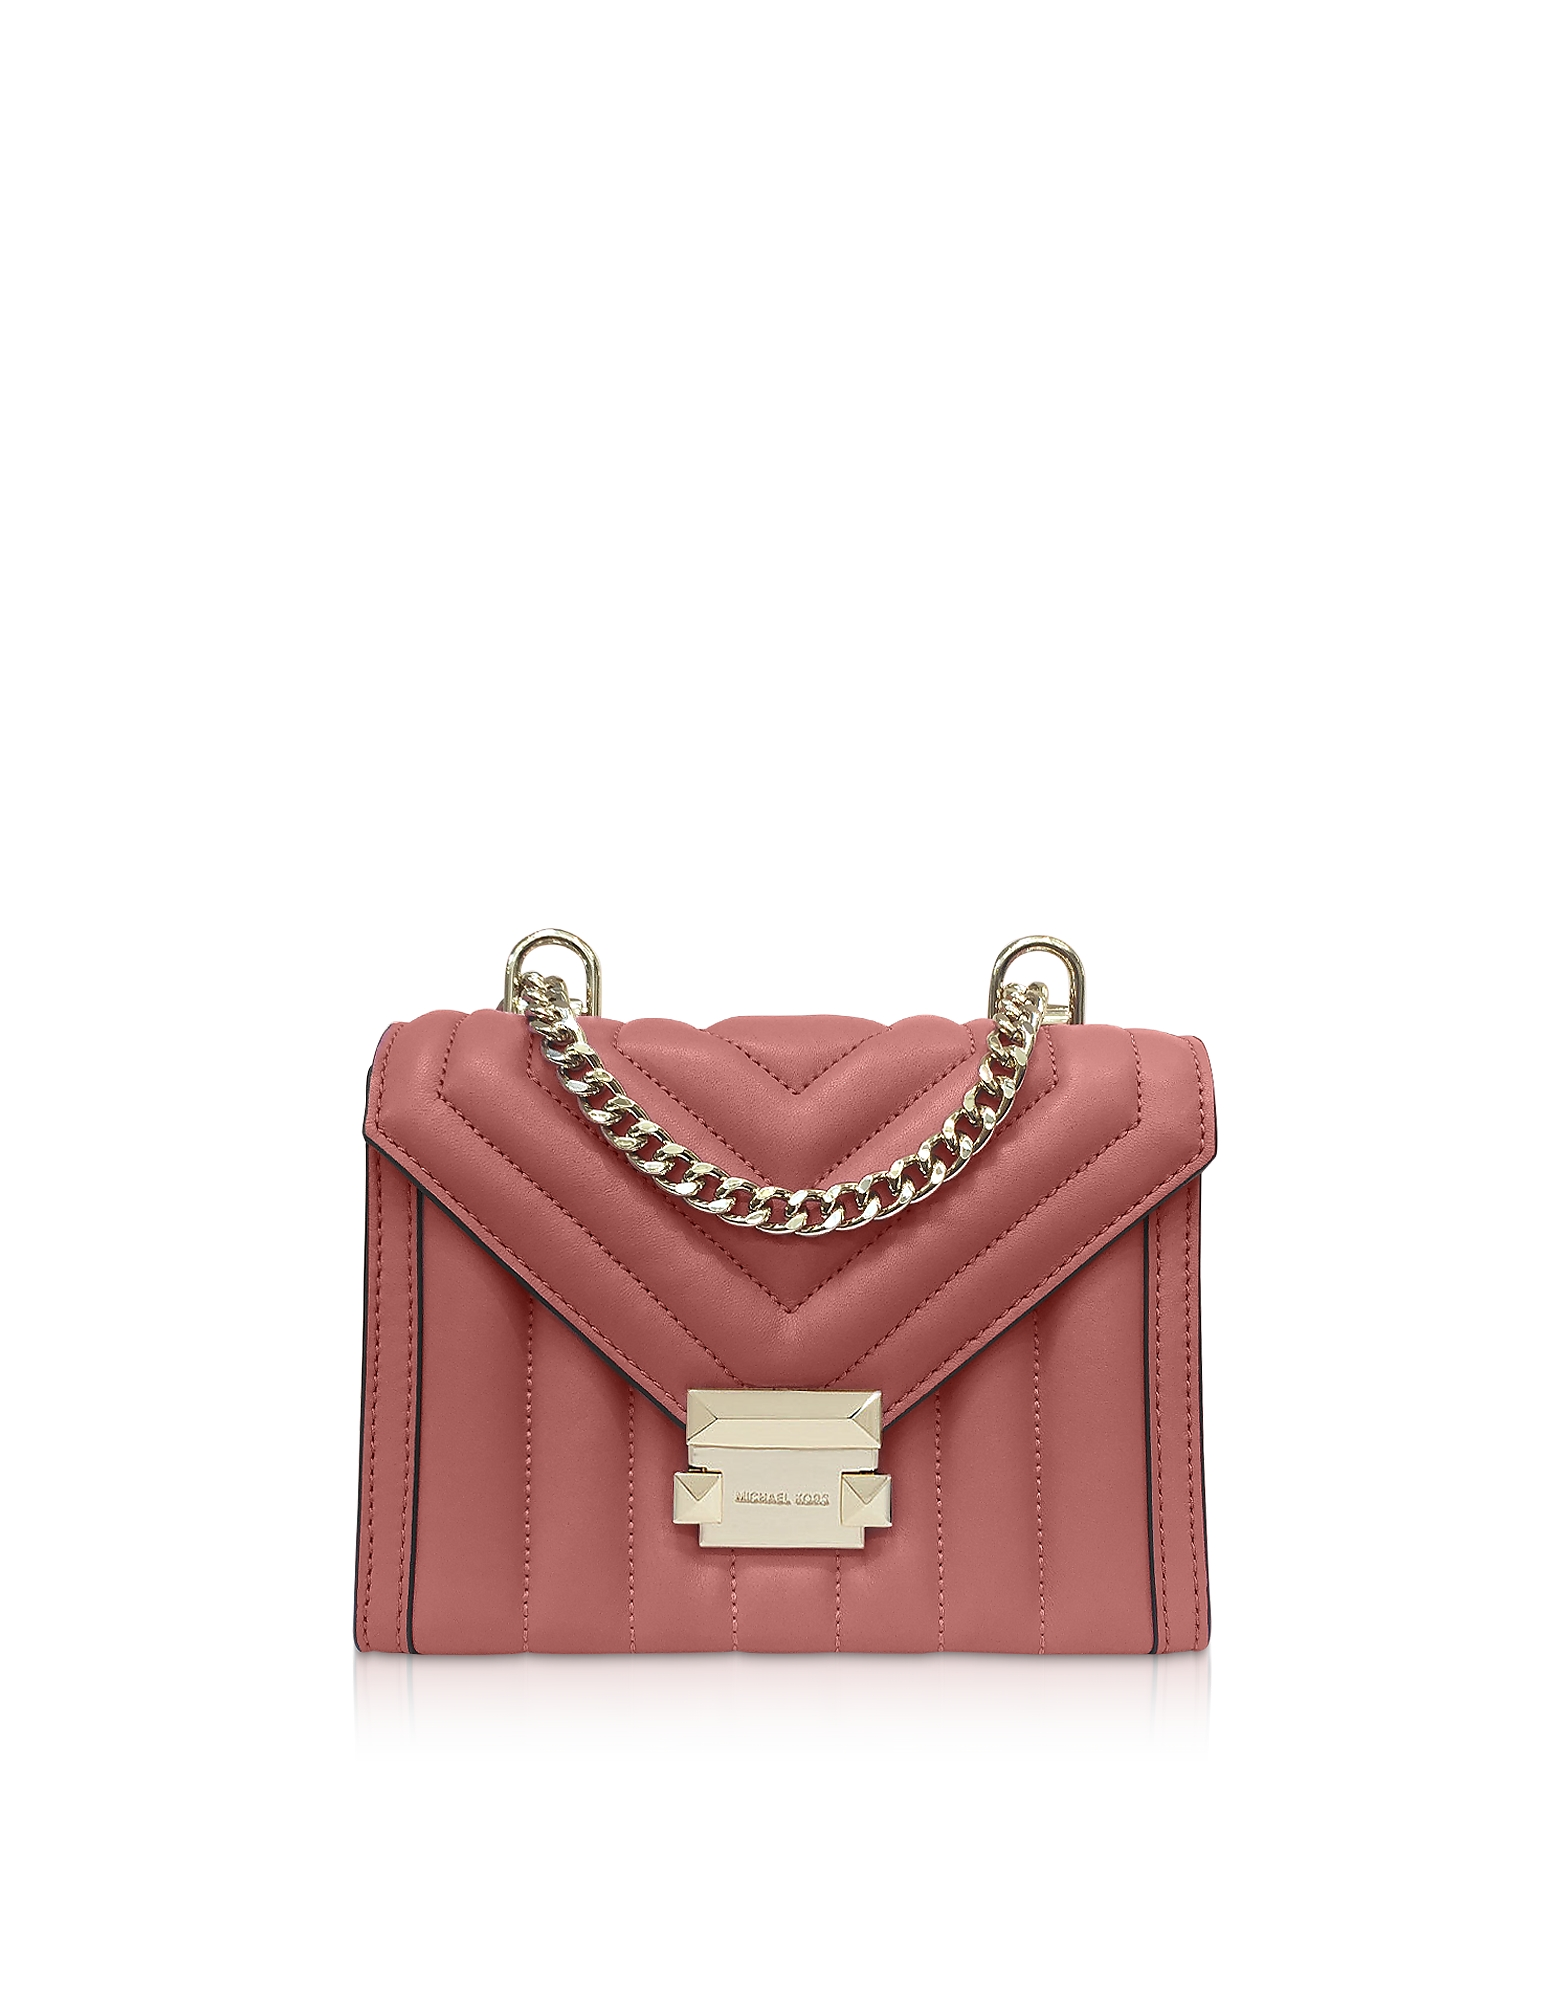 Whitney Small Rose Quilted Leather Convertible Shoulder Bag